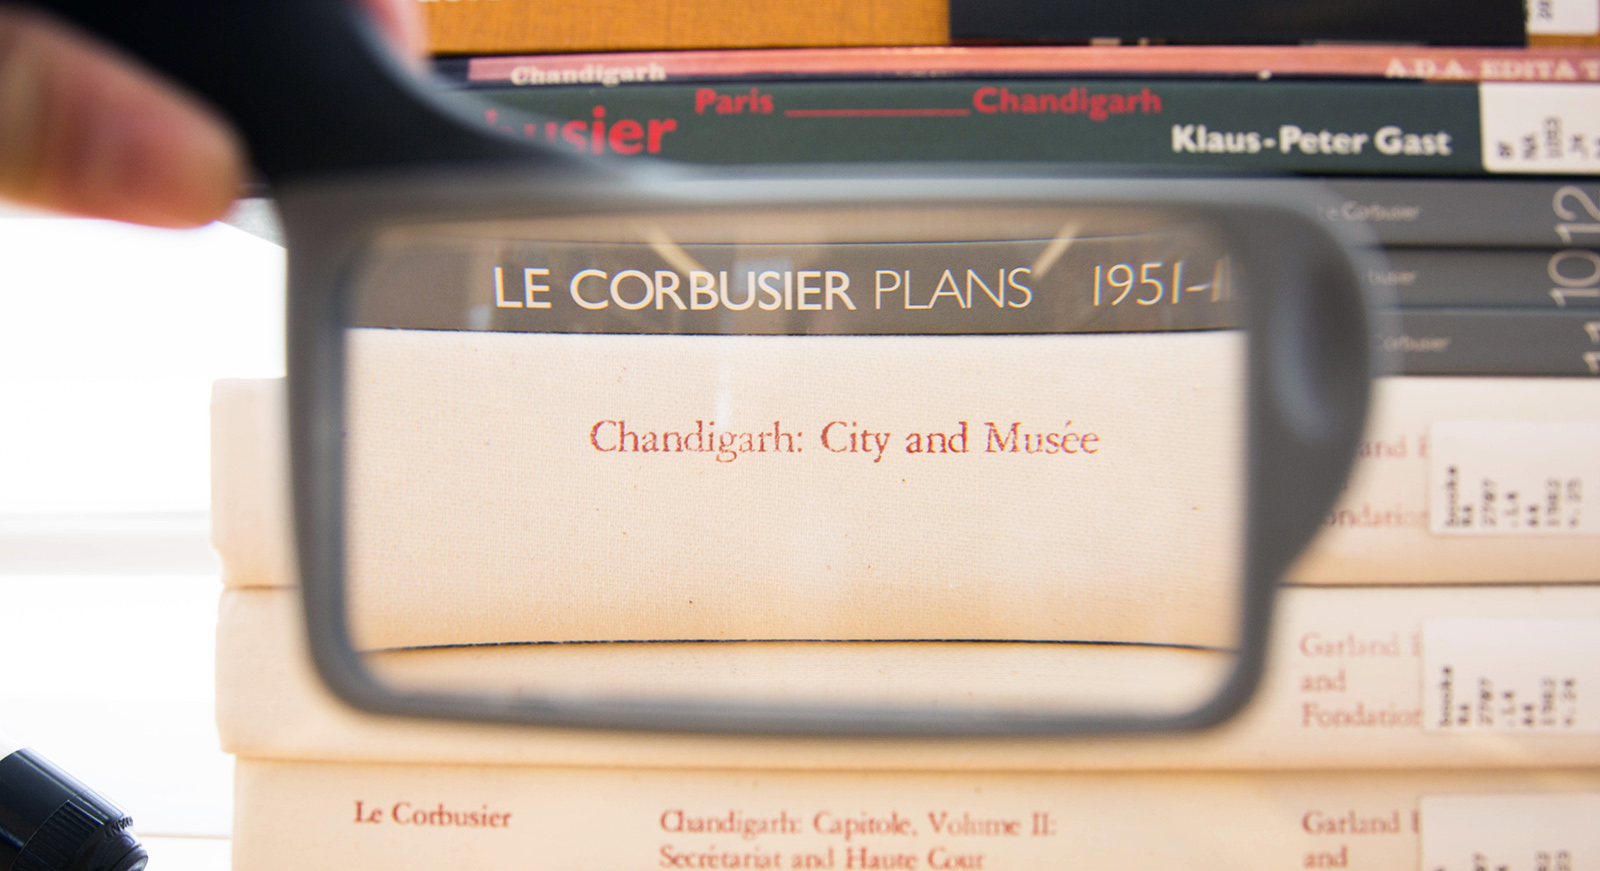 A magnifying glass focused on a book about Le Corbusier